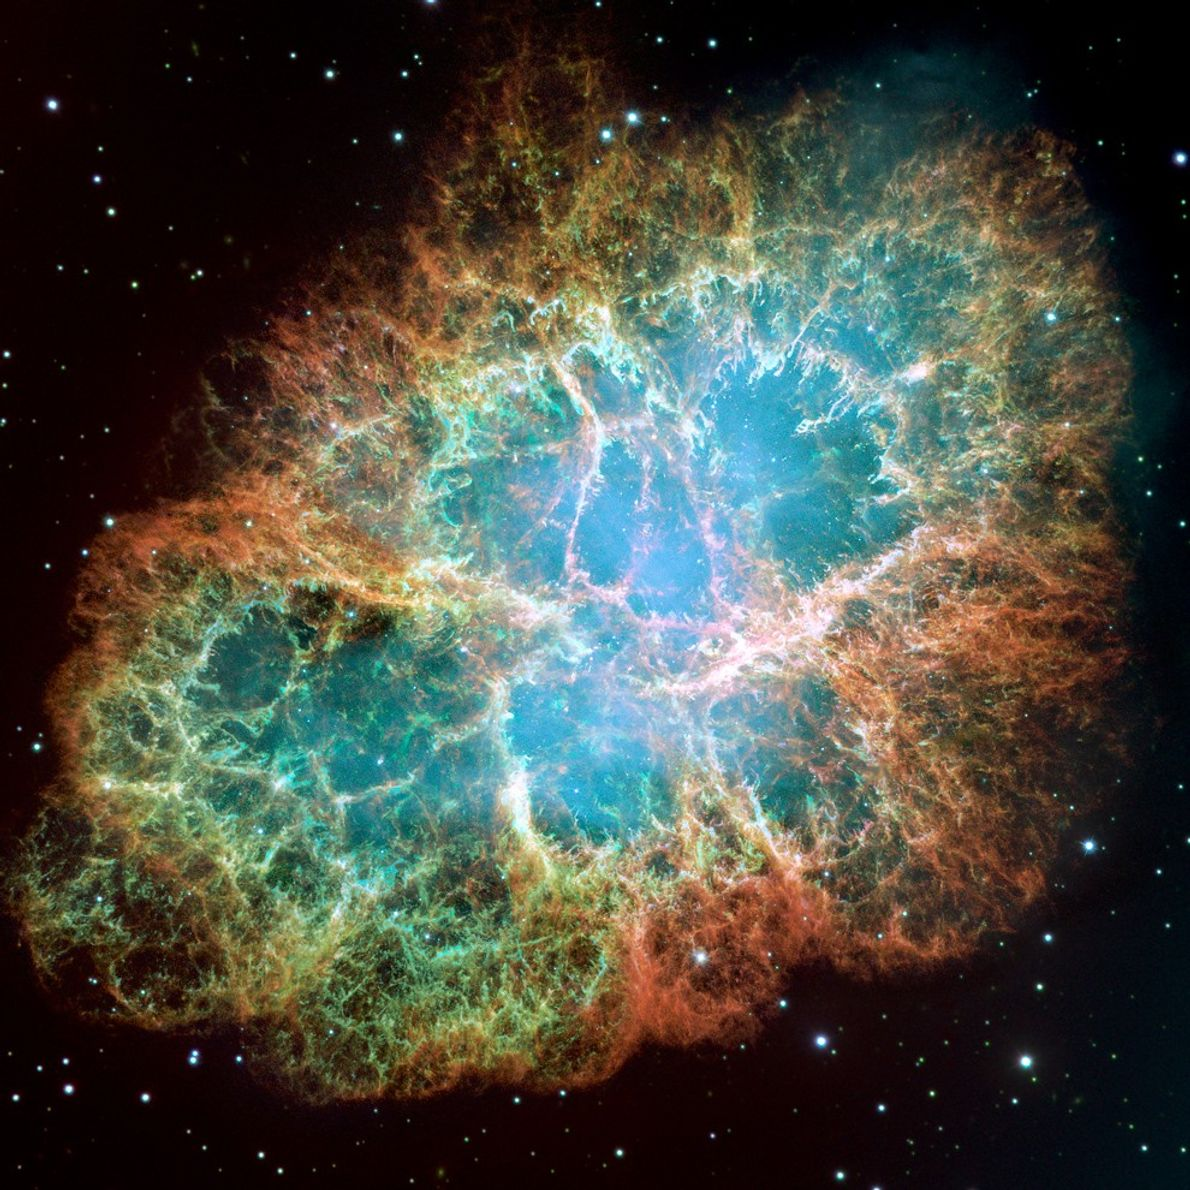 Considered the most detailed image ever taken of the famous Crab Nebula, this Hubble portrait shows ...